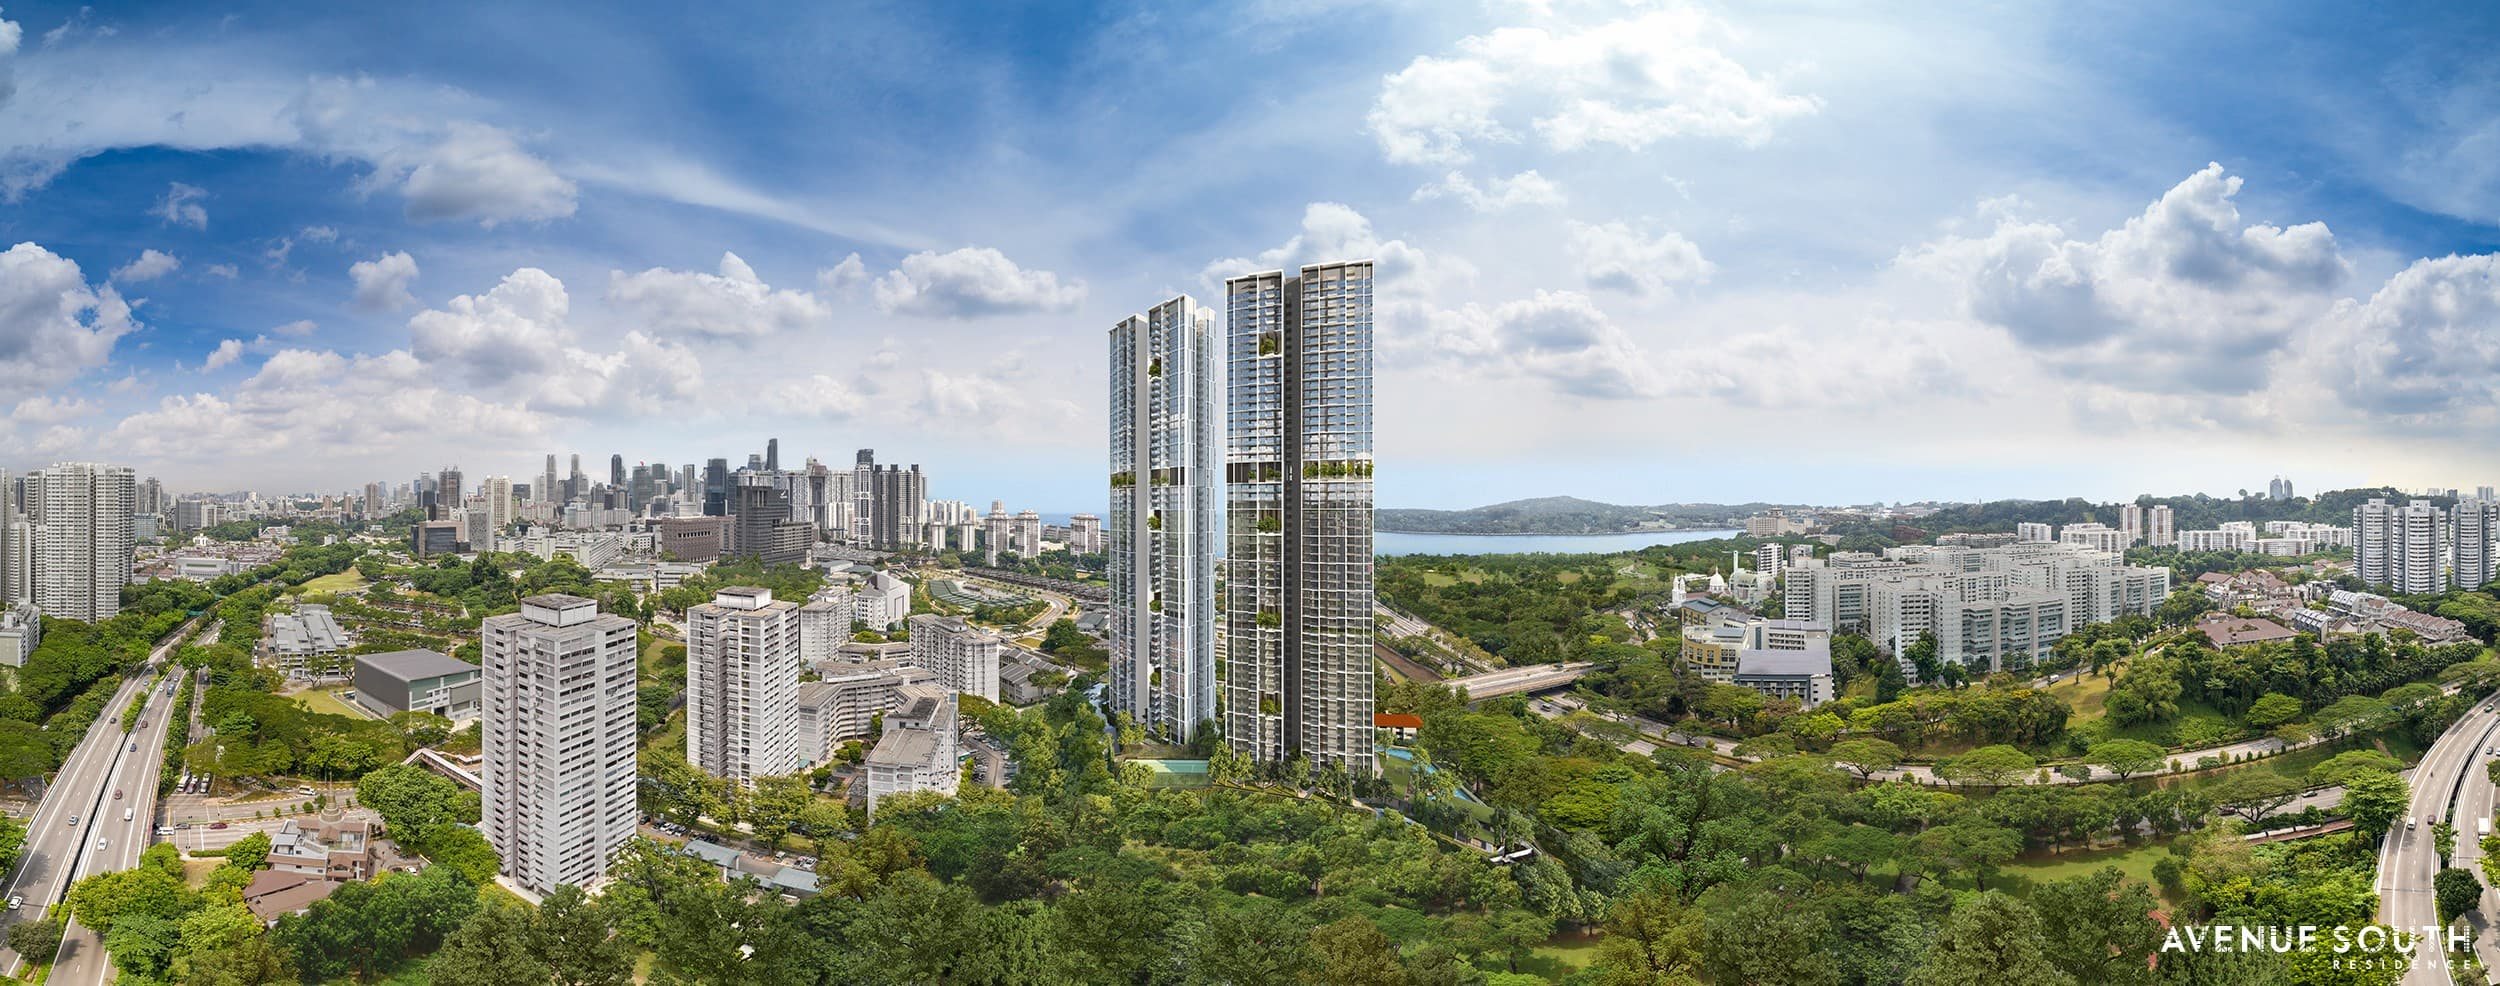 avenue-south-residence-silat-avenue-panoramic-view-singapore